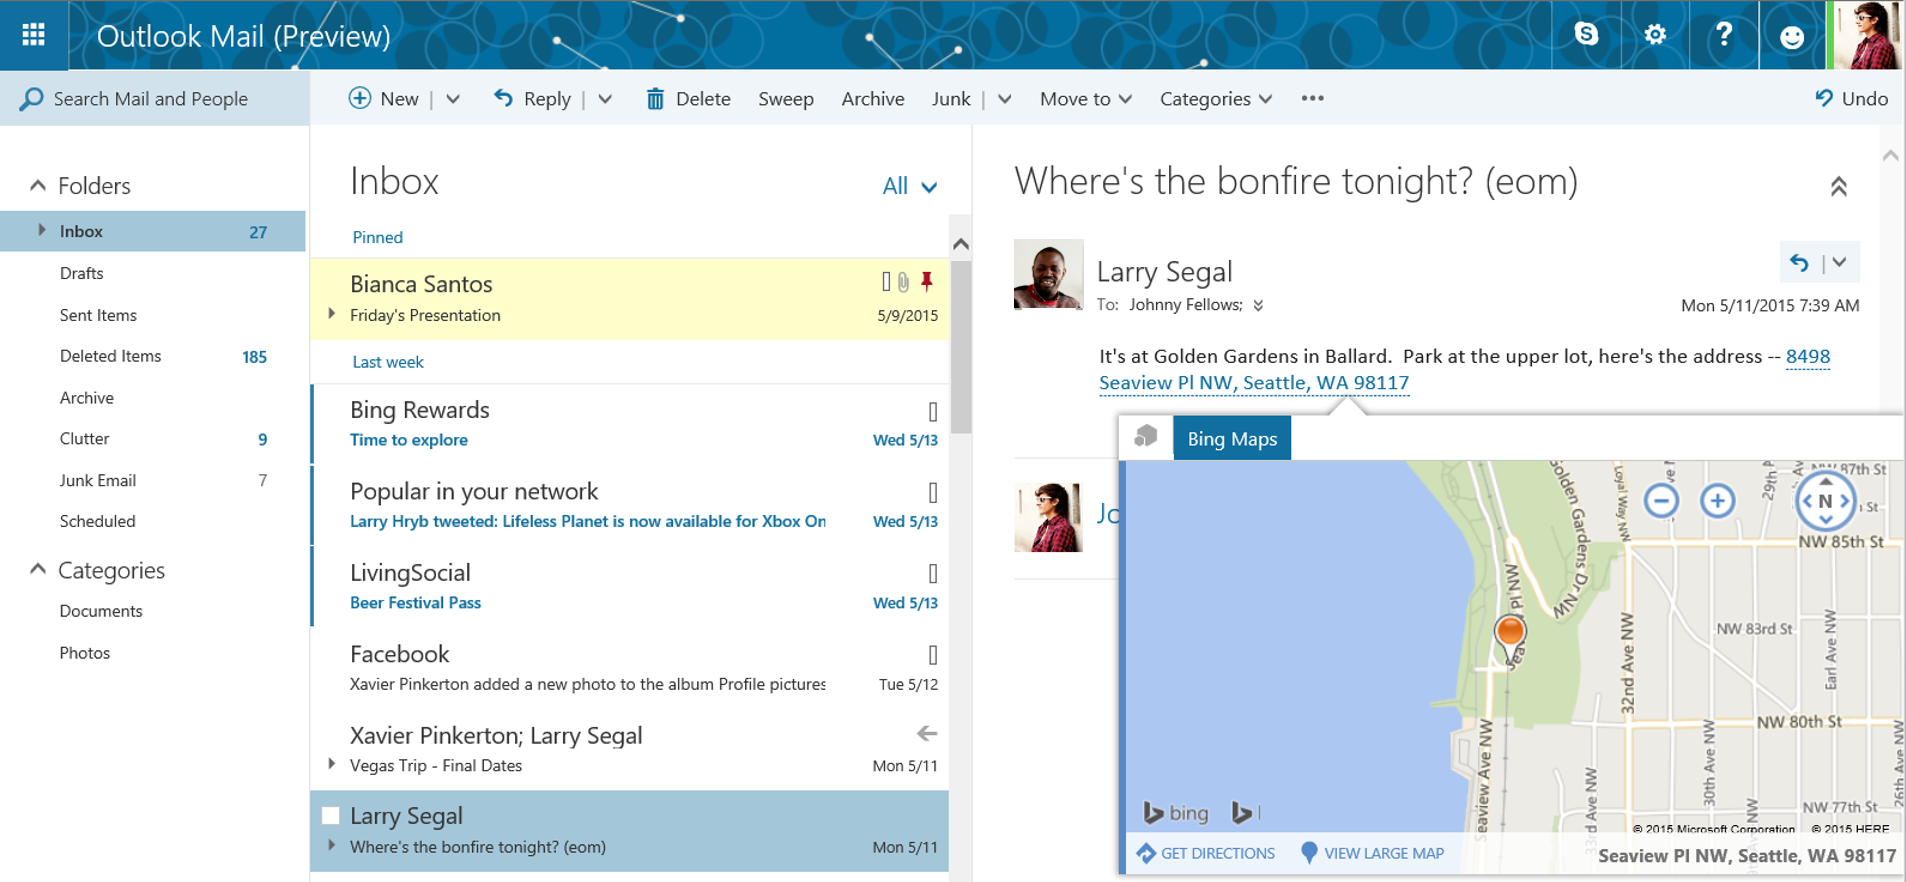 Outlook.com now has a built-in translator 12